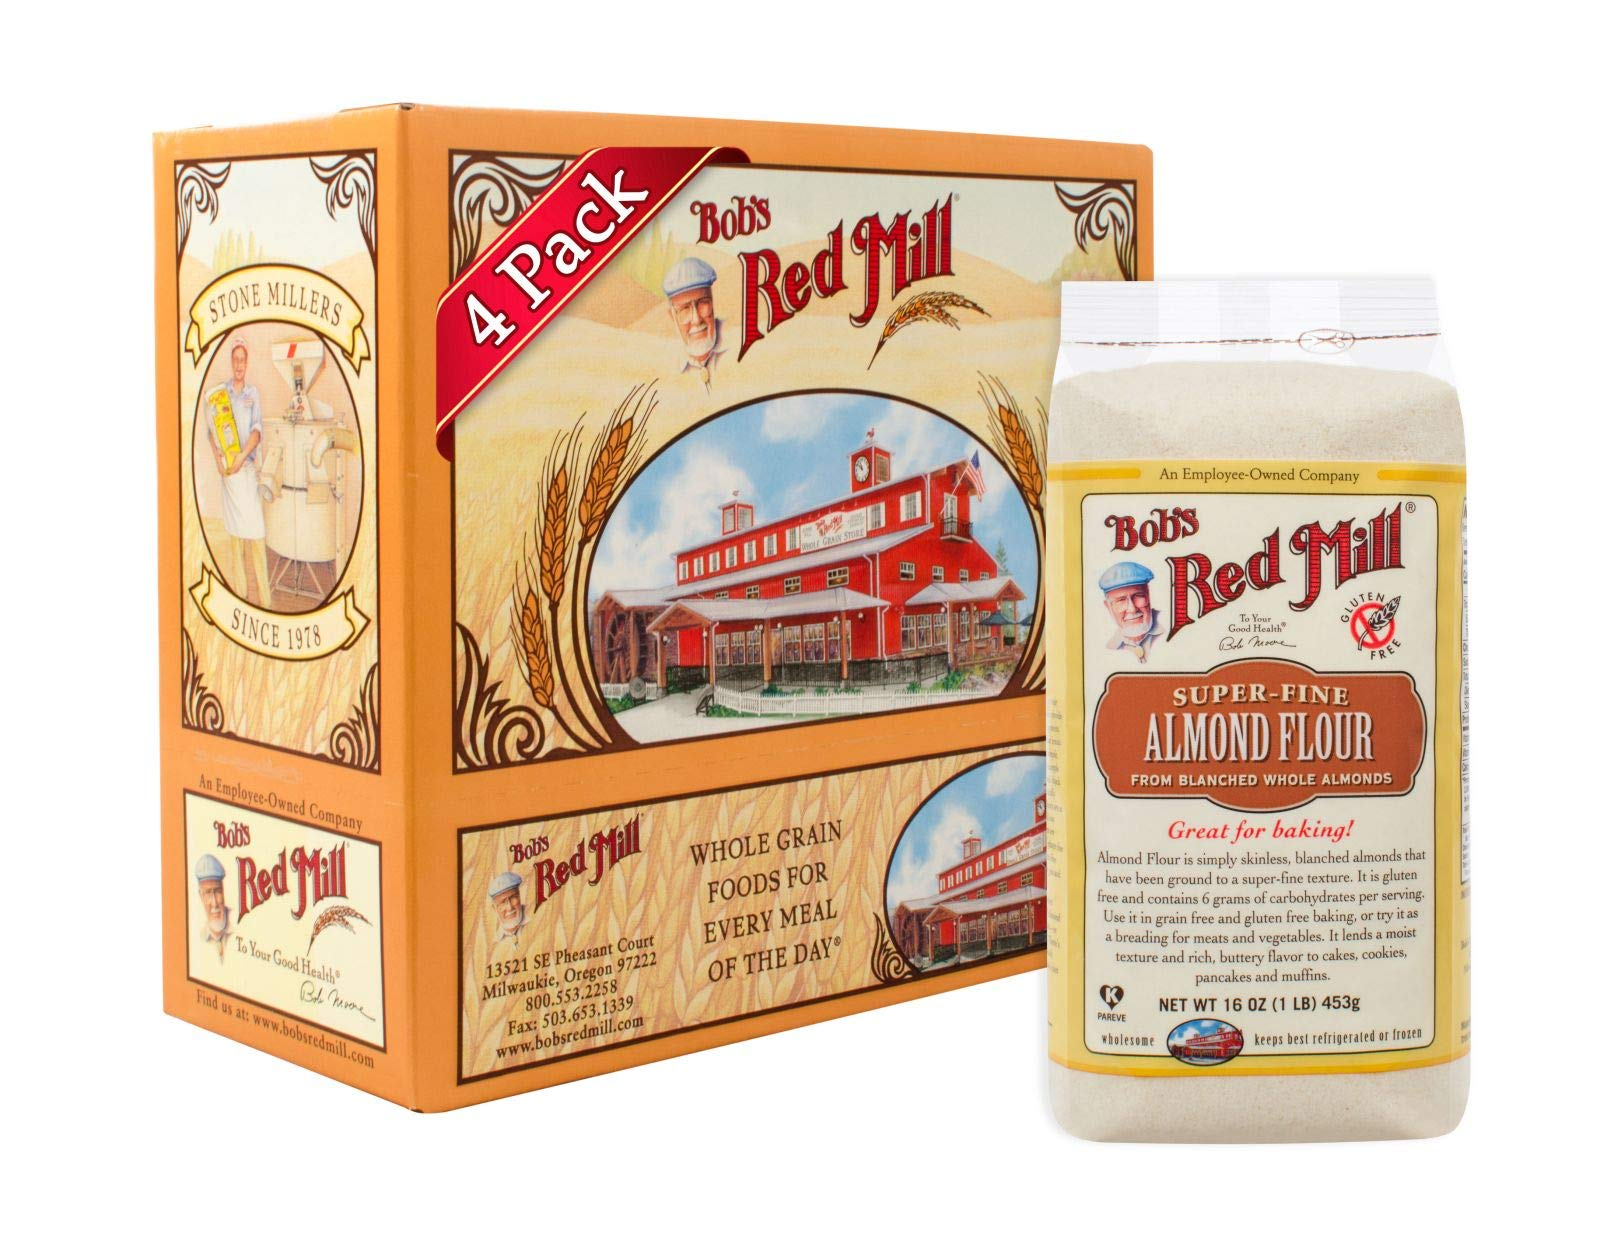 Bob's Red Mill Super-Fine Almond Flour, 16 Oz (4 Pack) by Bob's Red Mill